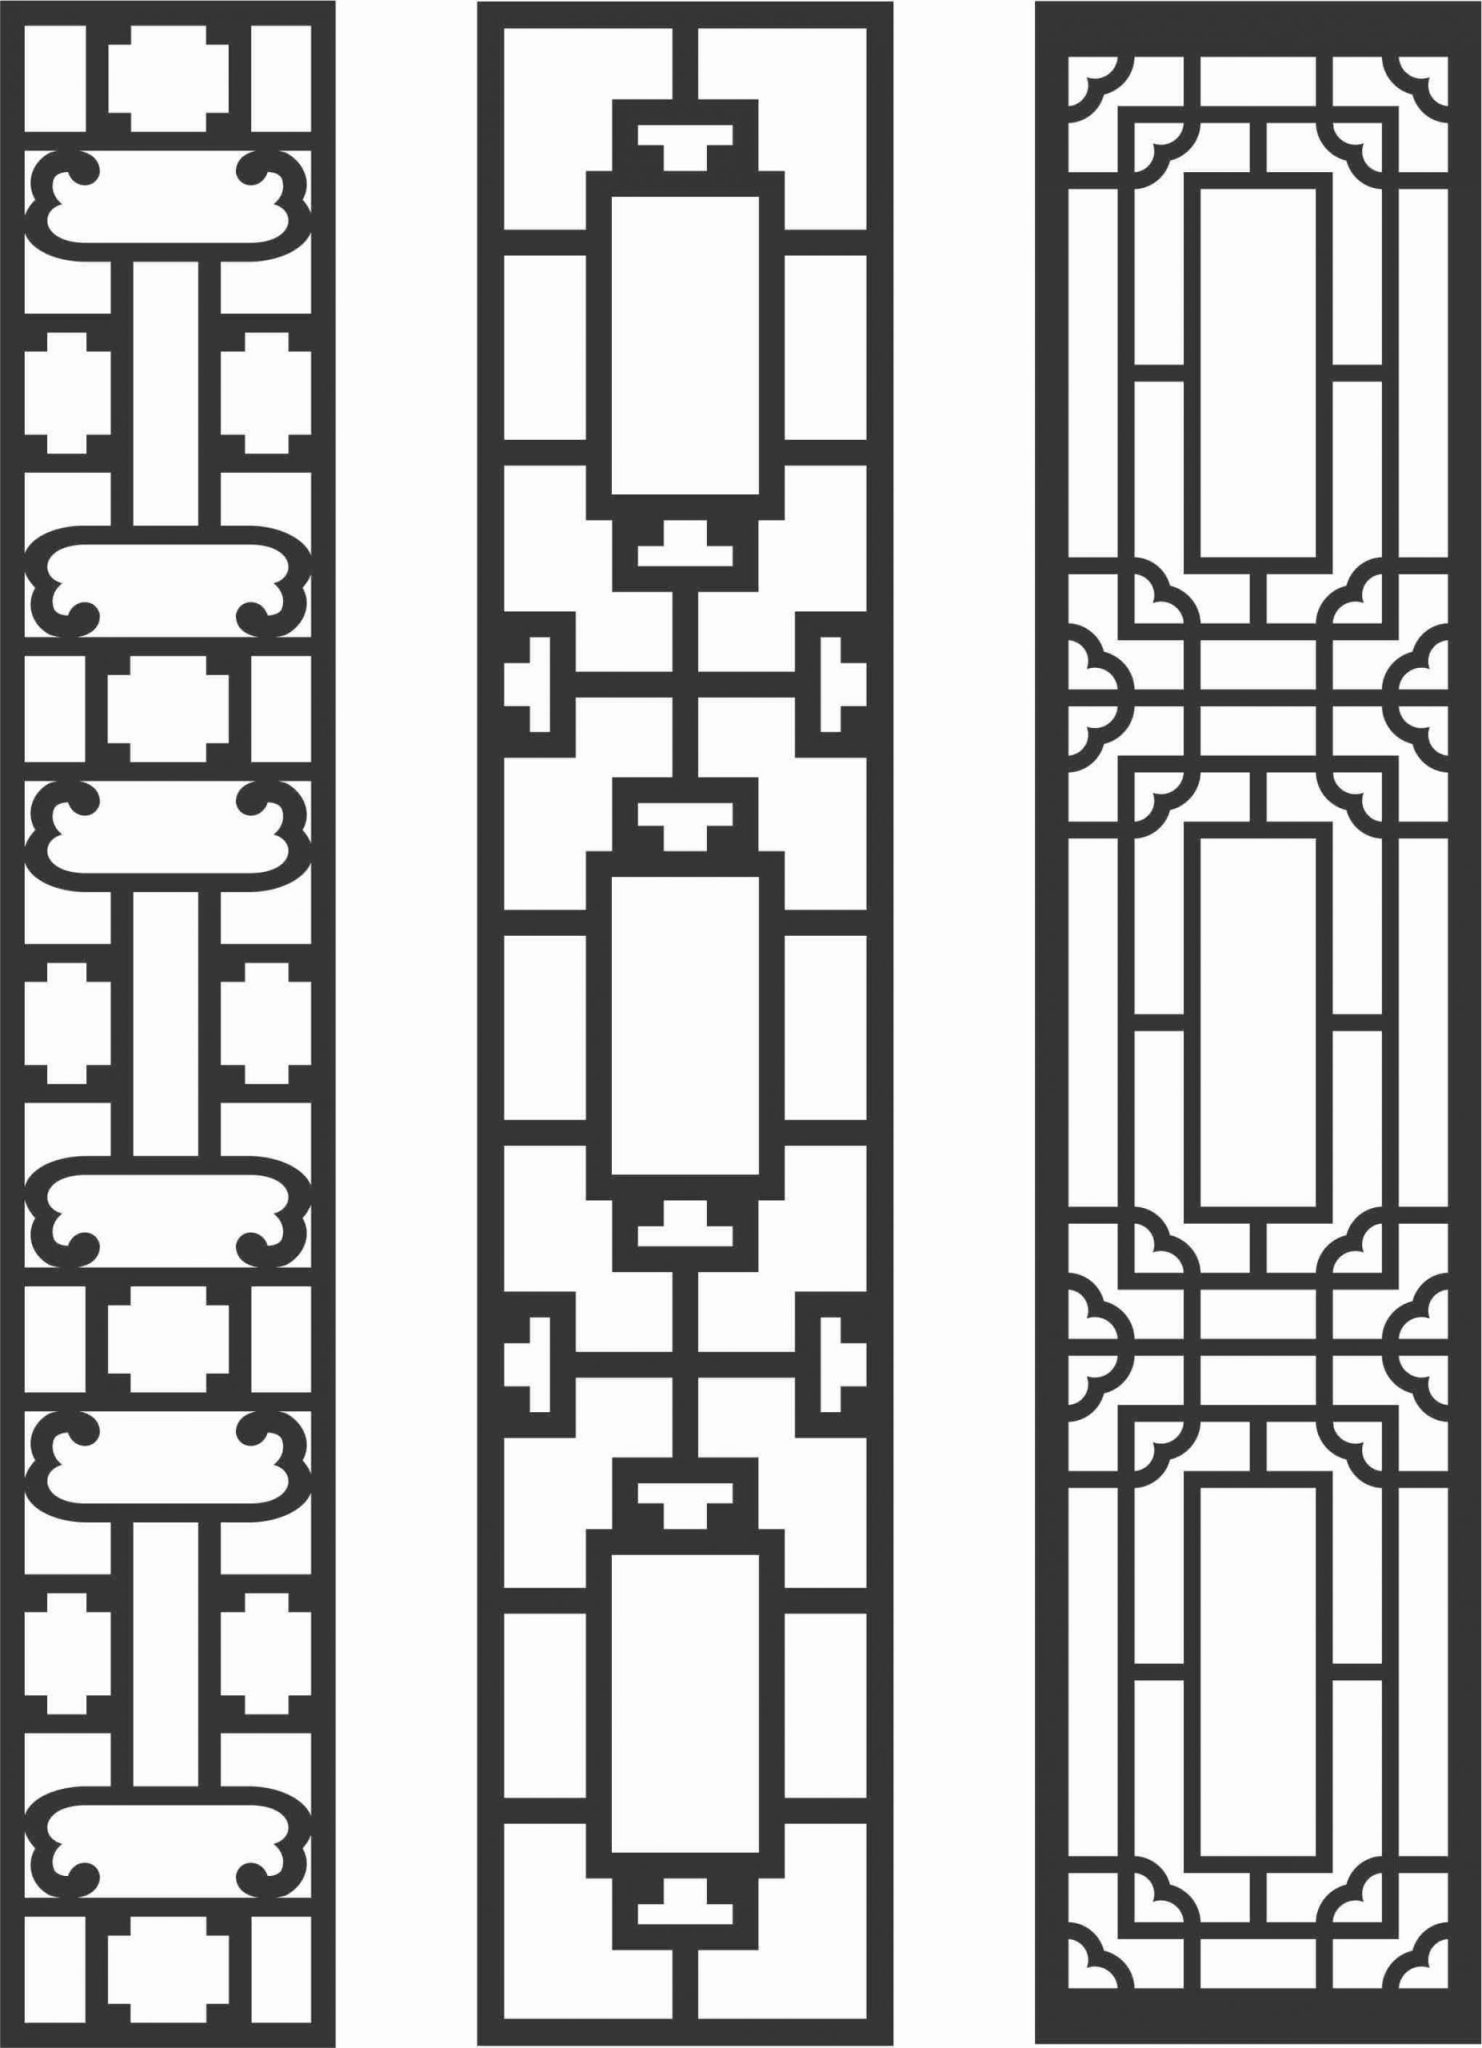 Decorative Screen Patterns For Laser Cutting 83 Free DXF File